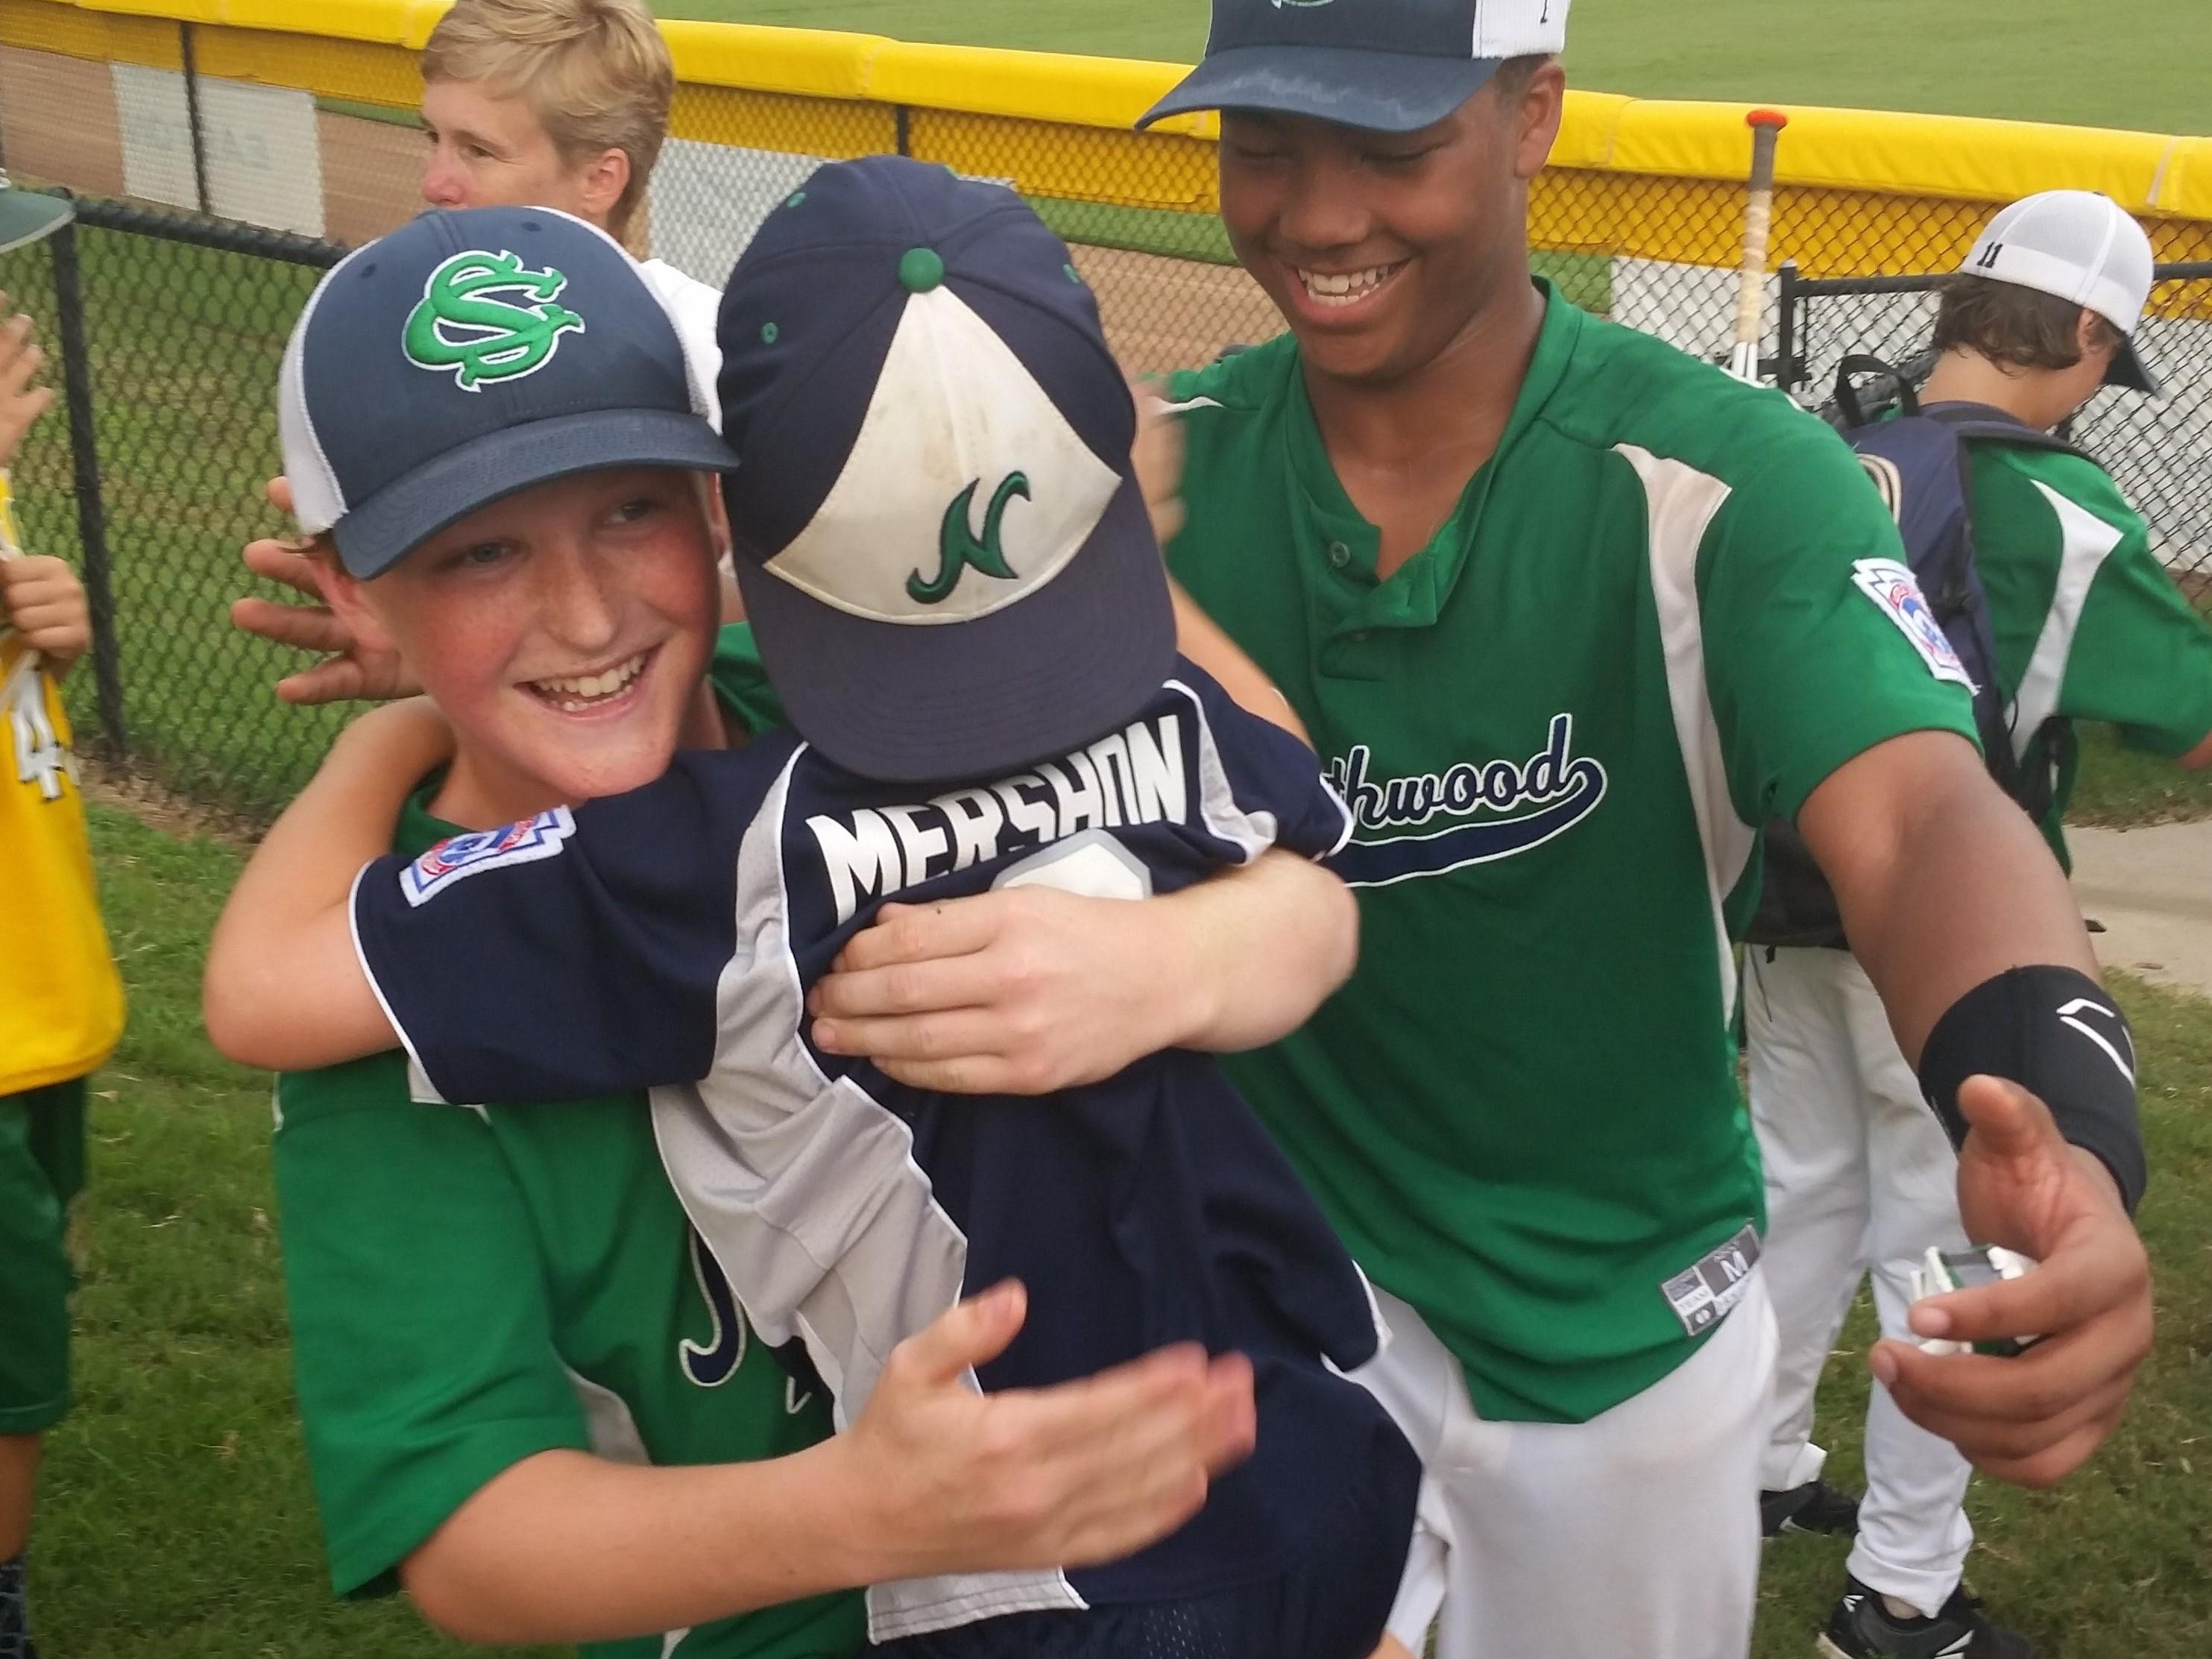 Northwood Little League players Ryan Chapman, left, and Terrence Gist celebrate with William Mershon, younger brother of second baseman David Mershon, after Northwood's 7-0 win over Virginia in the Southeast Regional championship.